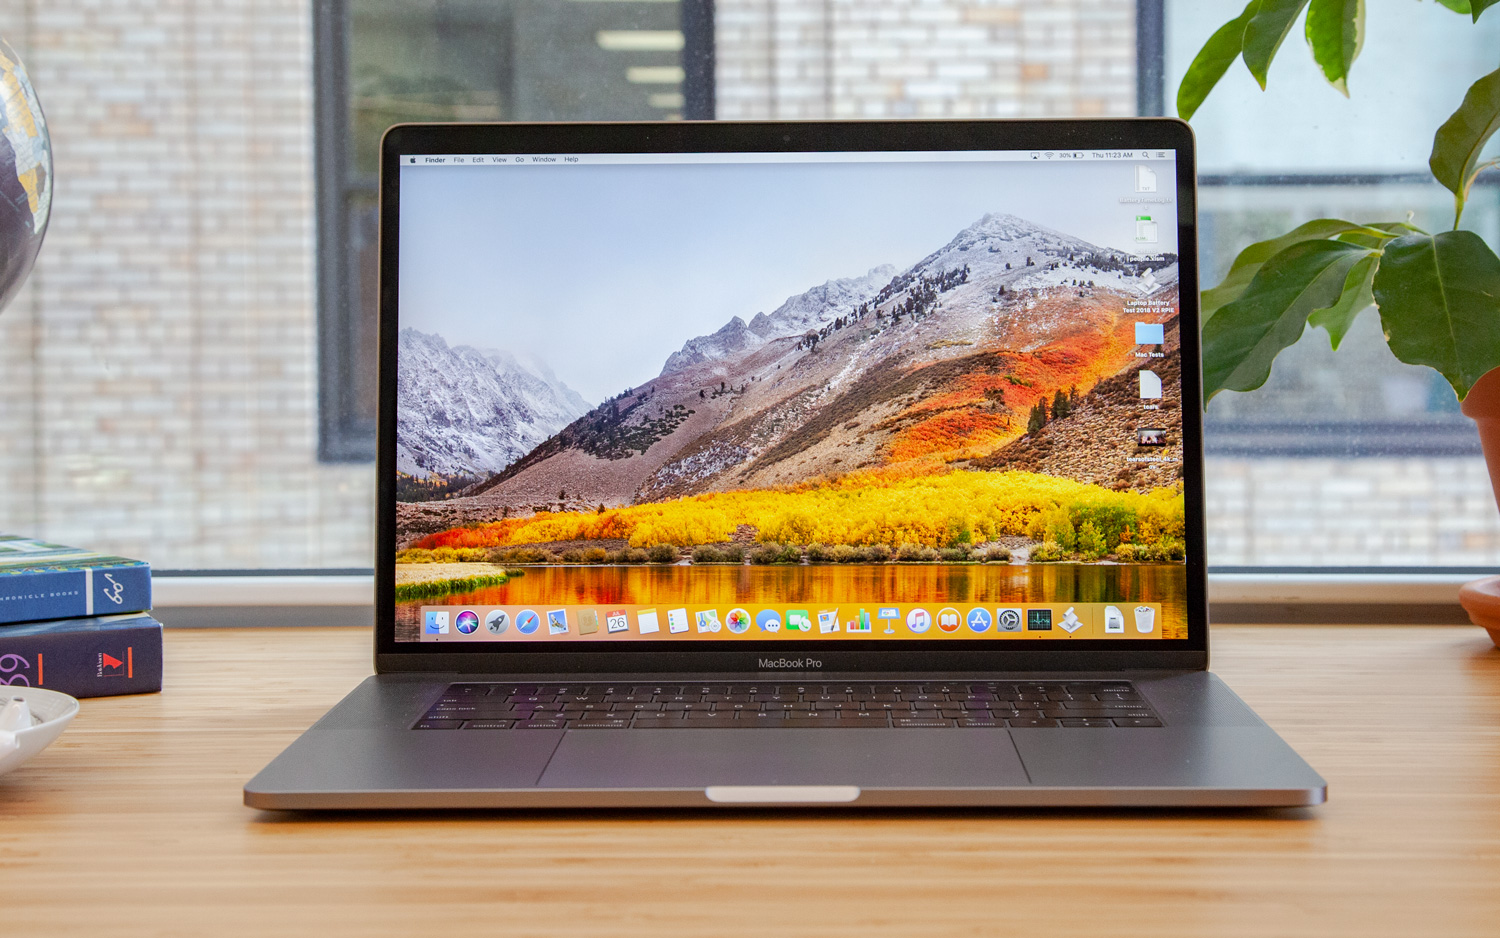 Best Macbook Pro Deals 2019 Best Apple Deals in August 2019 | Tom's Guide